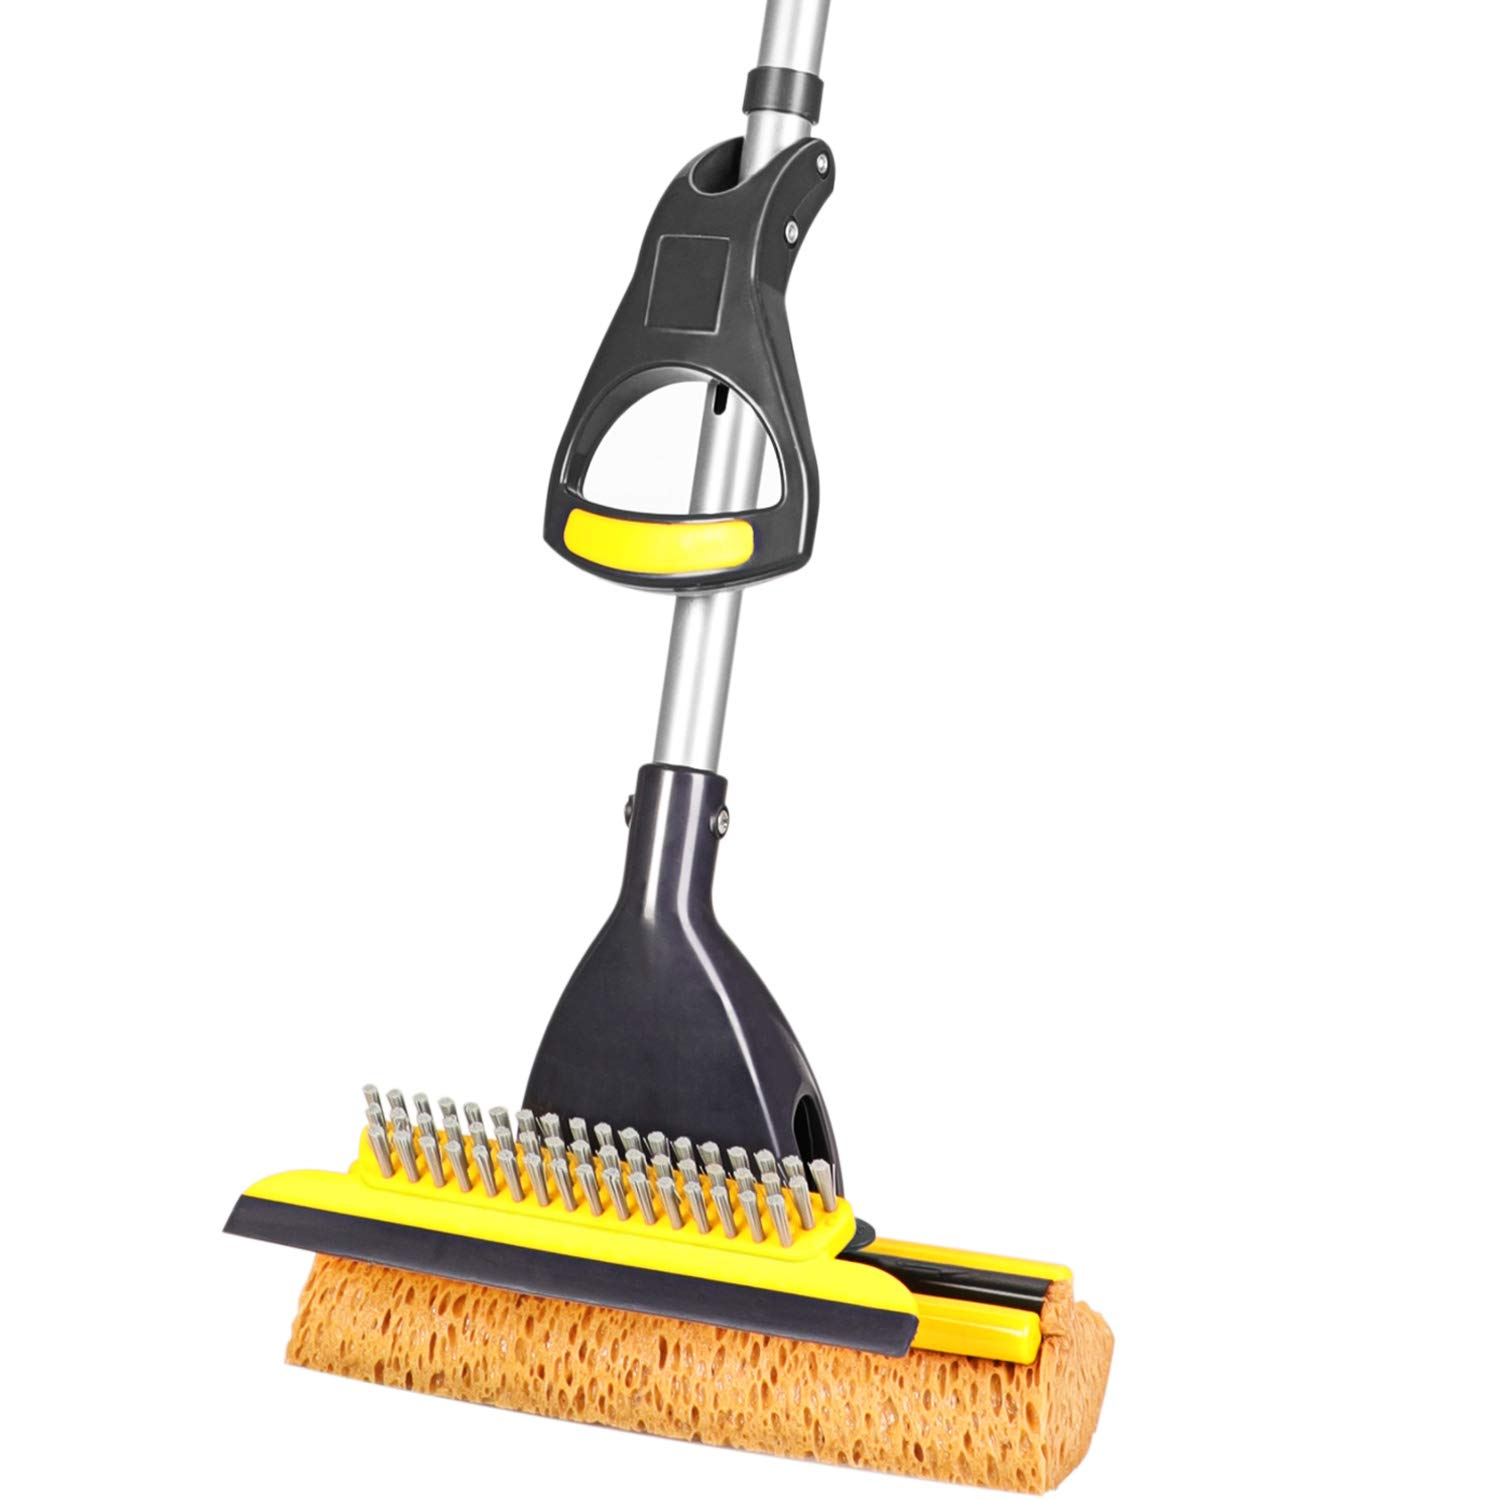 Yocada Sponge Mop Home Commercial Use Tile Floor Bathroom Garage Cleaning with Squeegee and Extendable Telescopic Long Handle 41-53 Inches Easily Dry Wringing